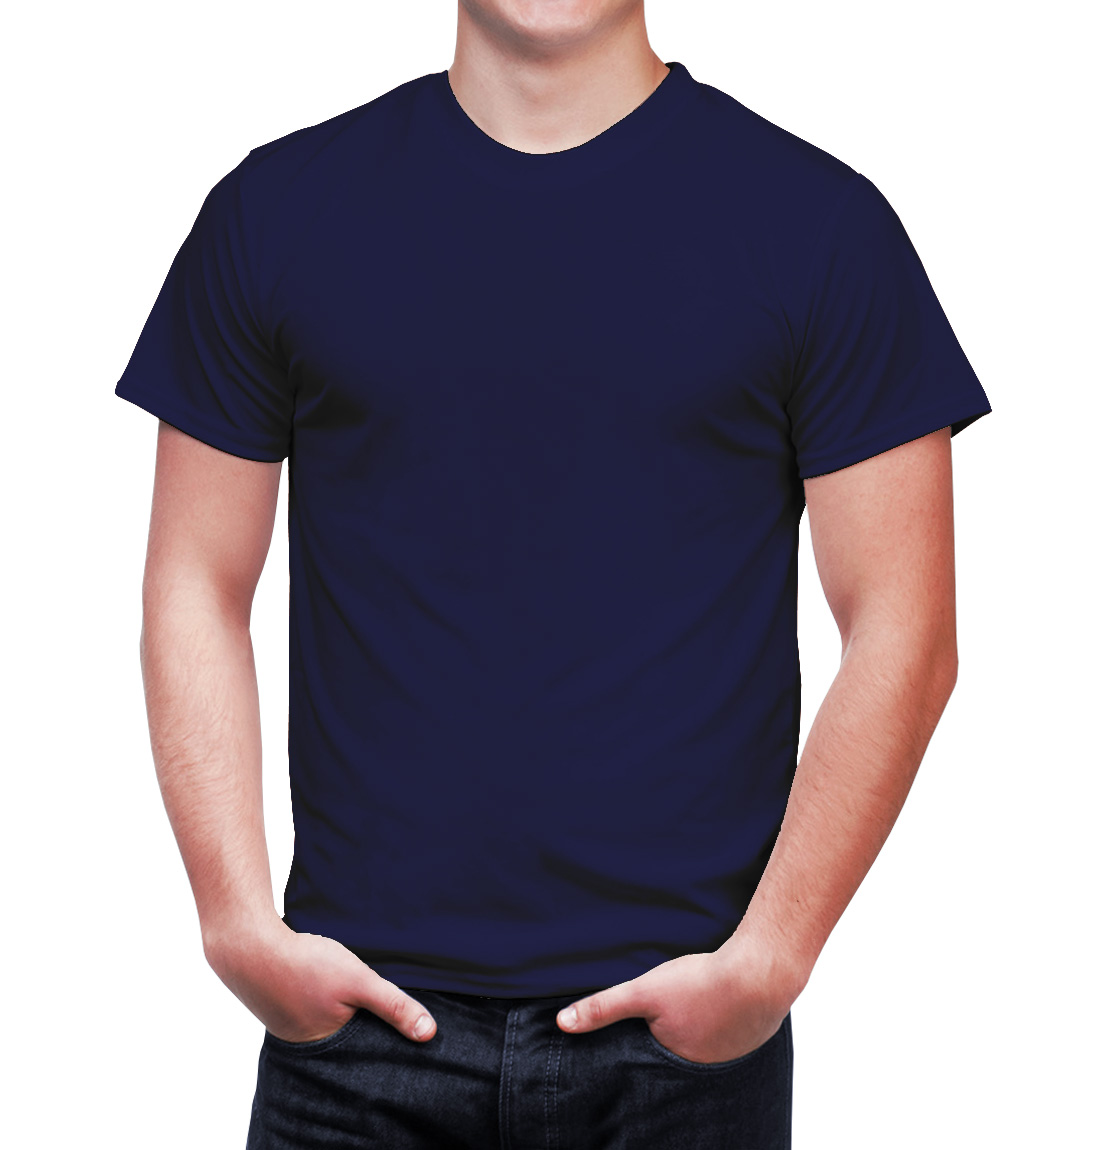 Buy navy t shirt - 58% OFF! Share discount 3deb4798e65